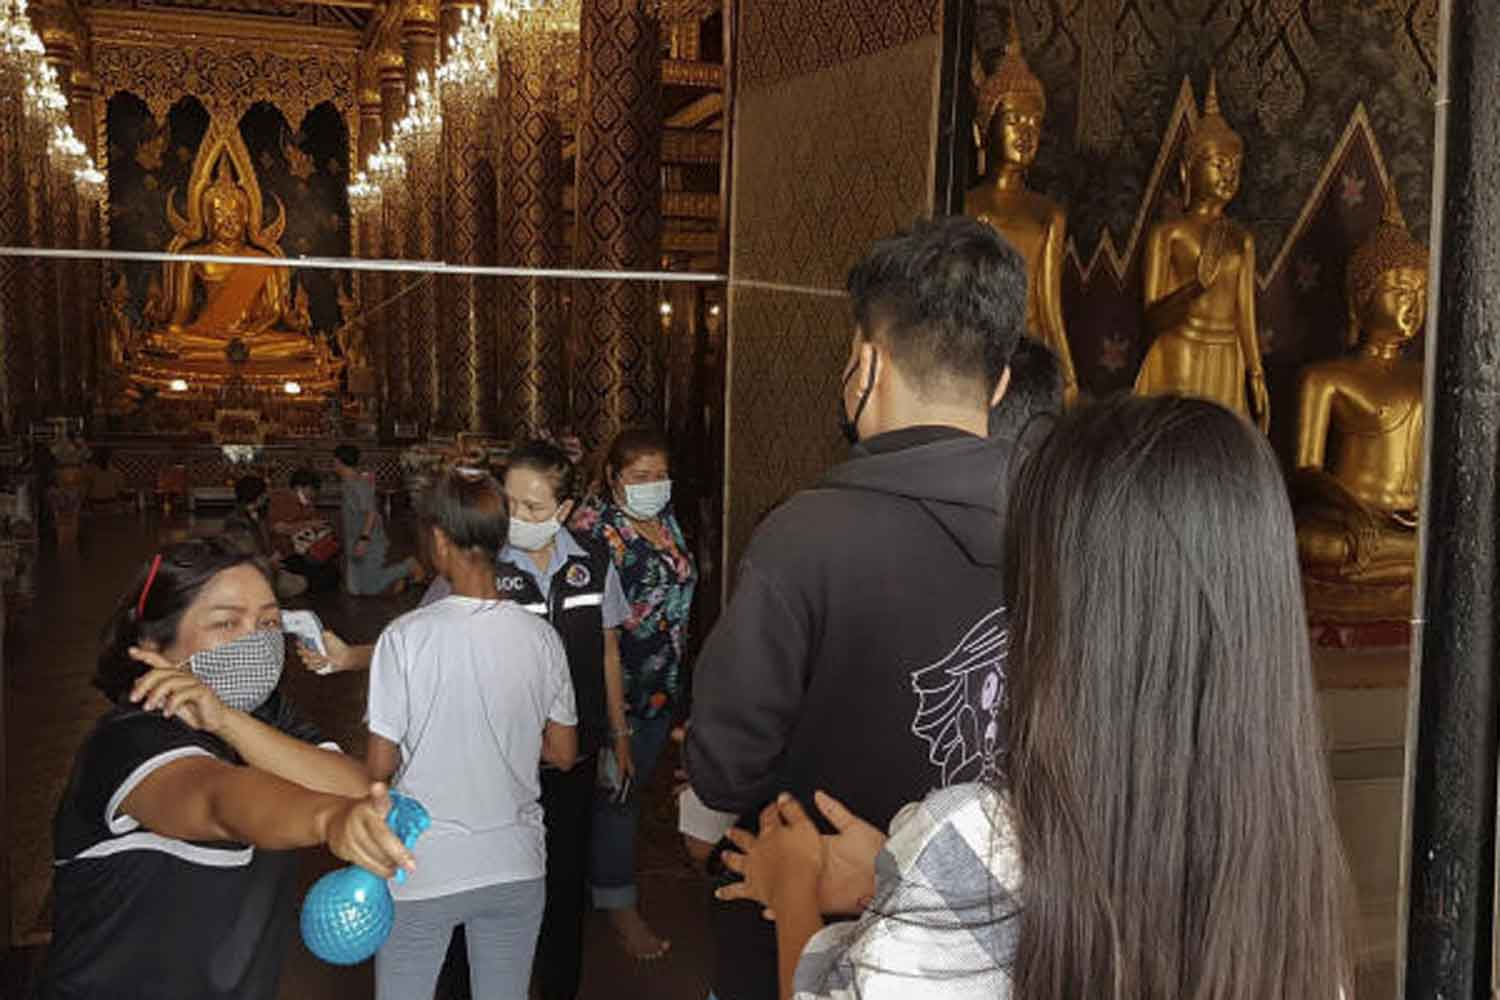 Health officials and volunteers spray disinfectant on visitors to Wat Phra Si Rattana Mahathat in Muang district of Phitsanulok on Tuesday. (Photo: Chinnawat Singha)